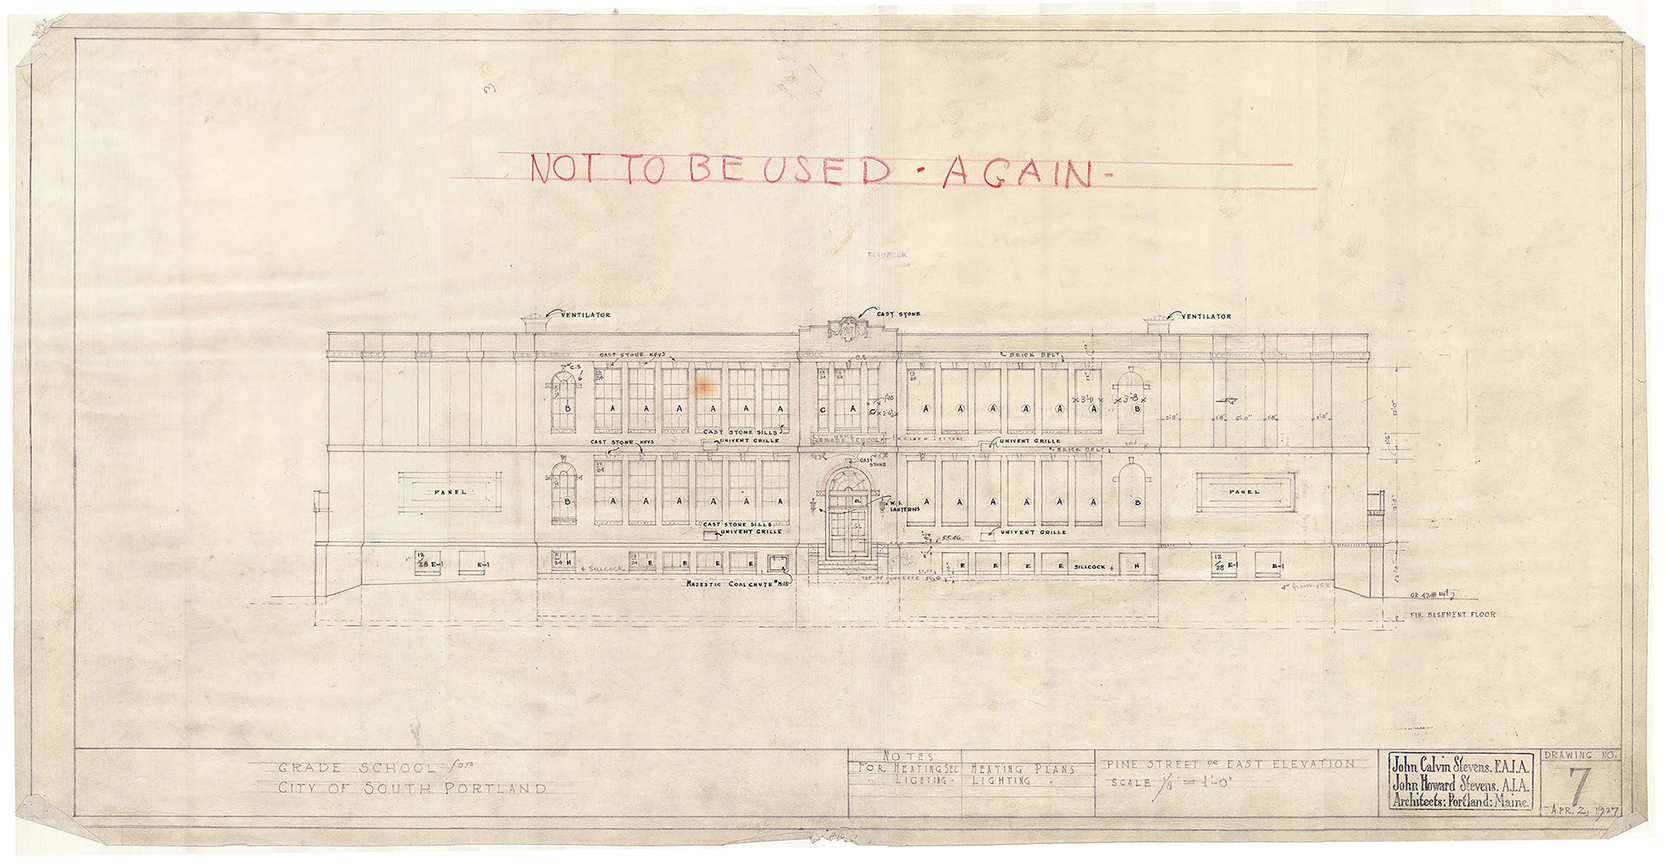 One of John Calvin Stevens's original drawings for the Roosevelt School. Courtesy of Wright-Ryan Construction and Maine Historical Society.